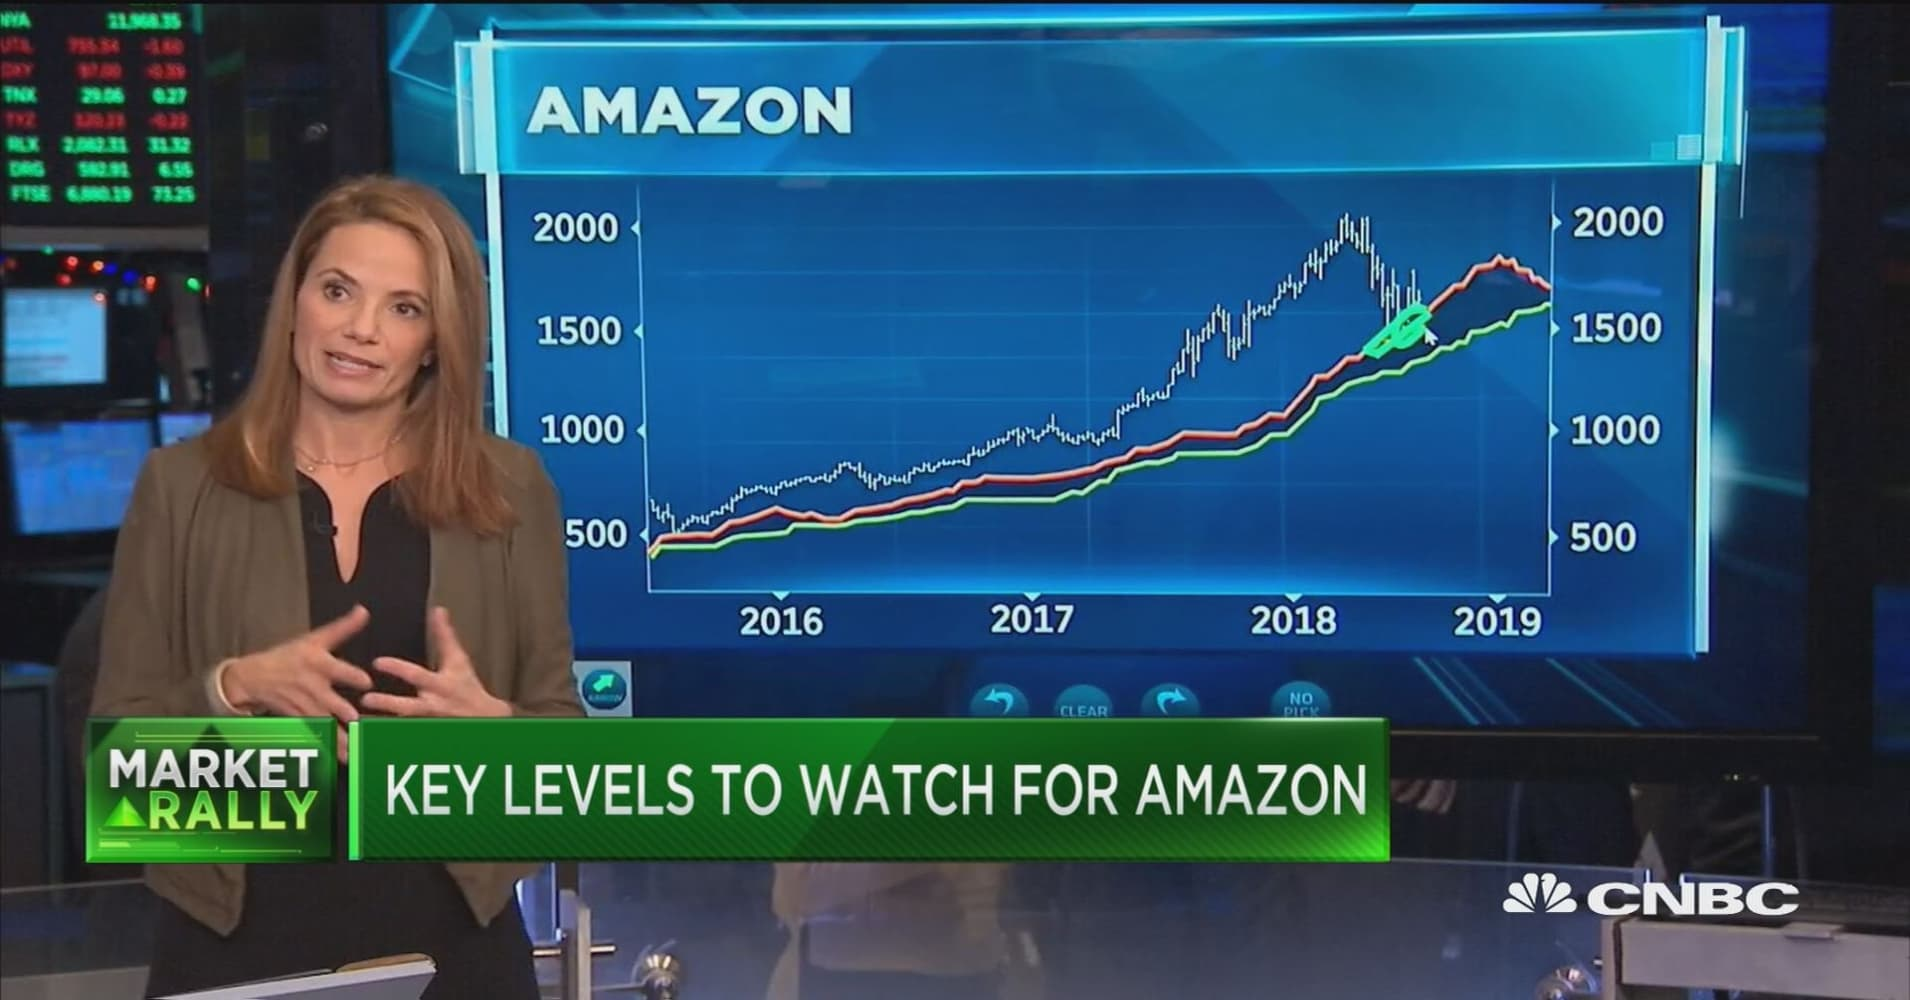 Chart analyst Katie Stockton sees 'very bullish' signs for S&P, Apple and Amazon